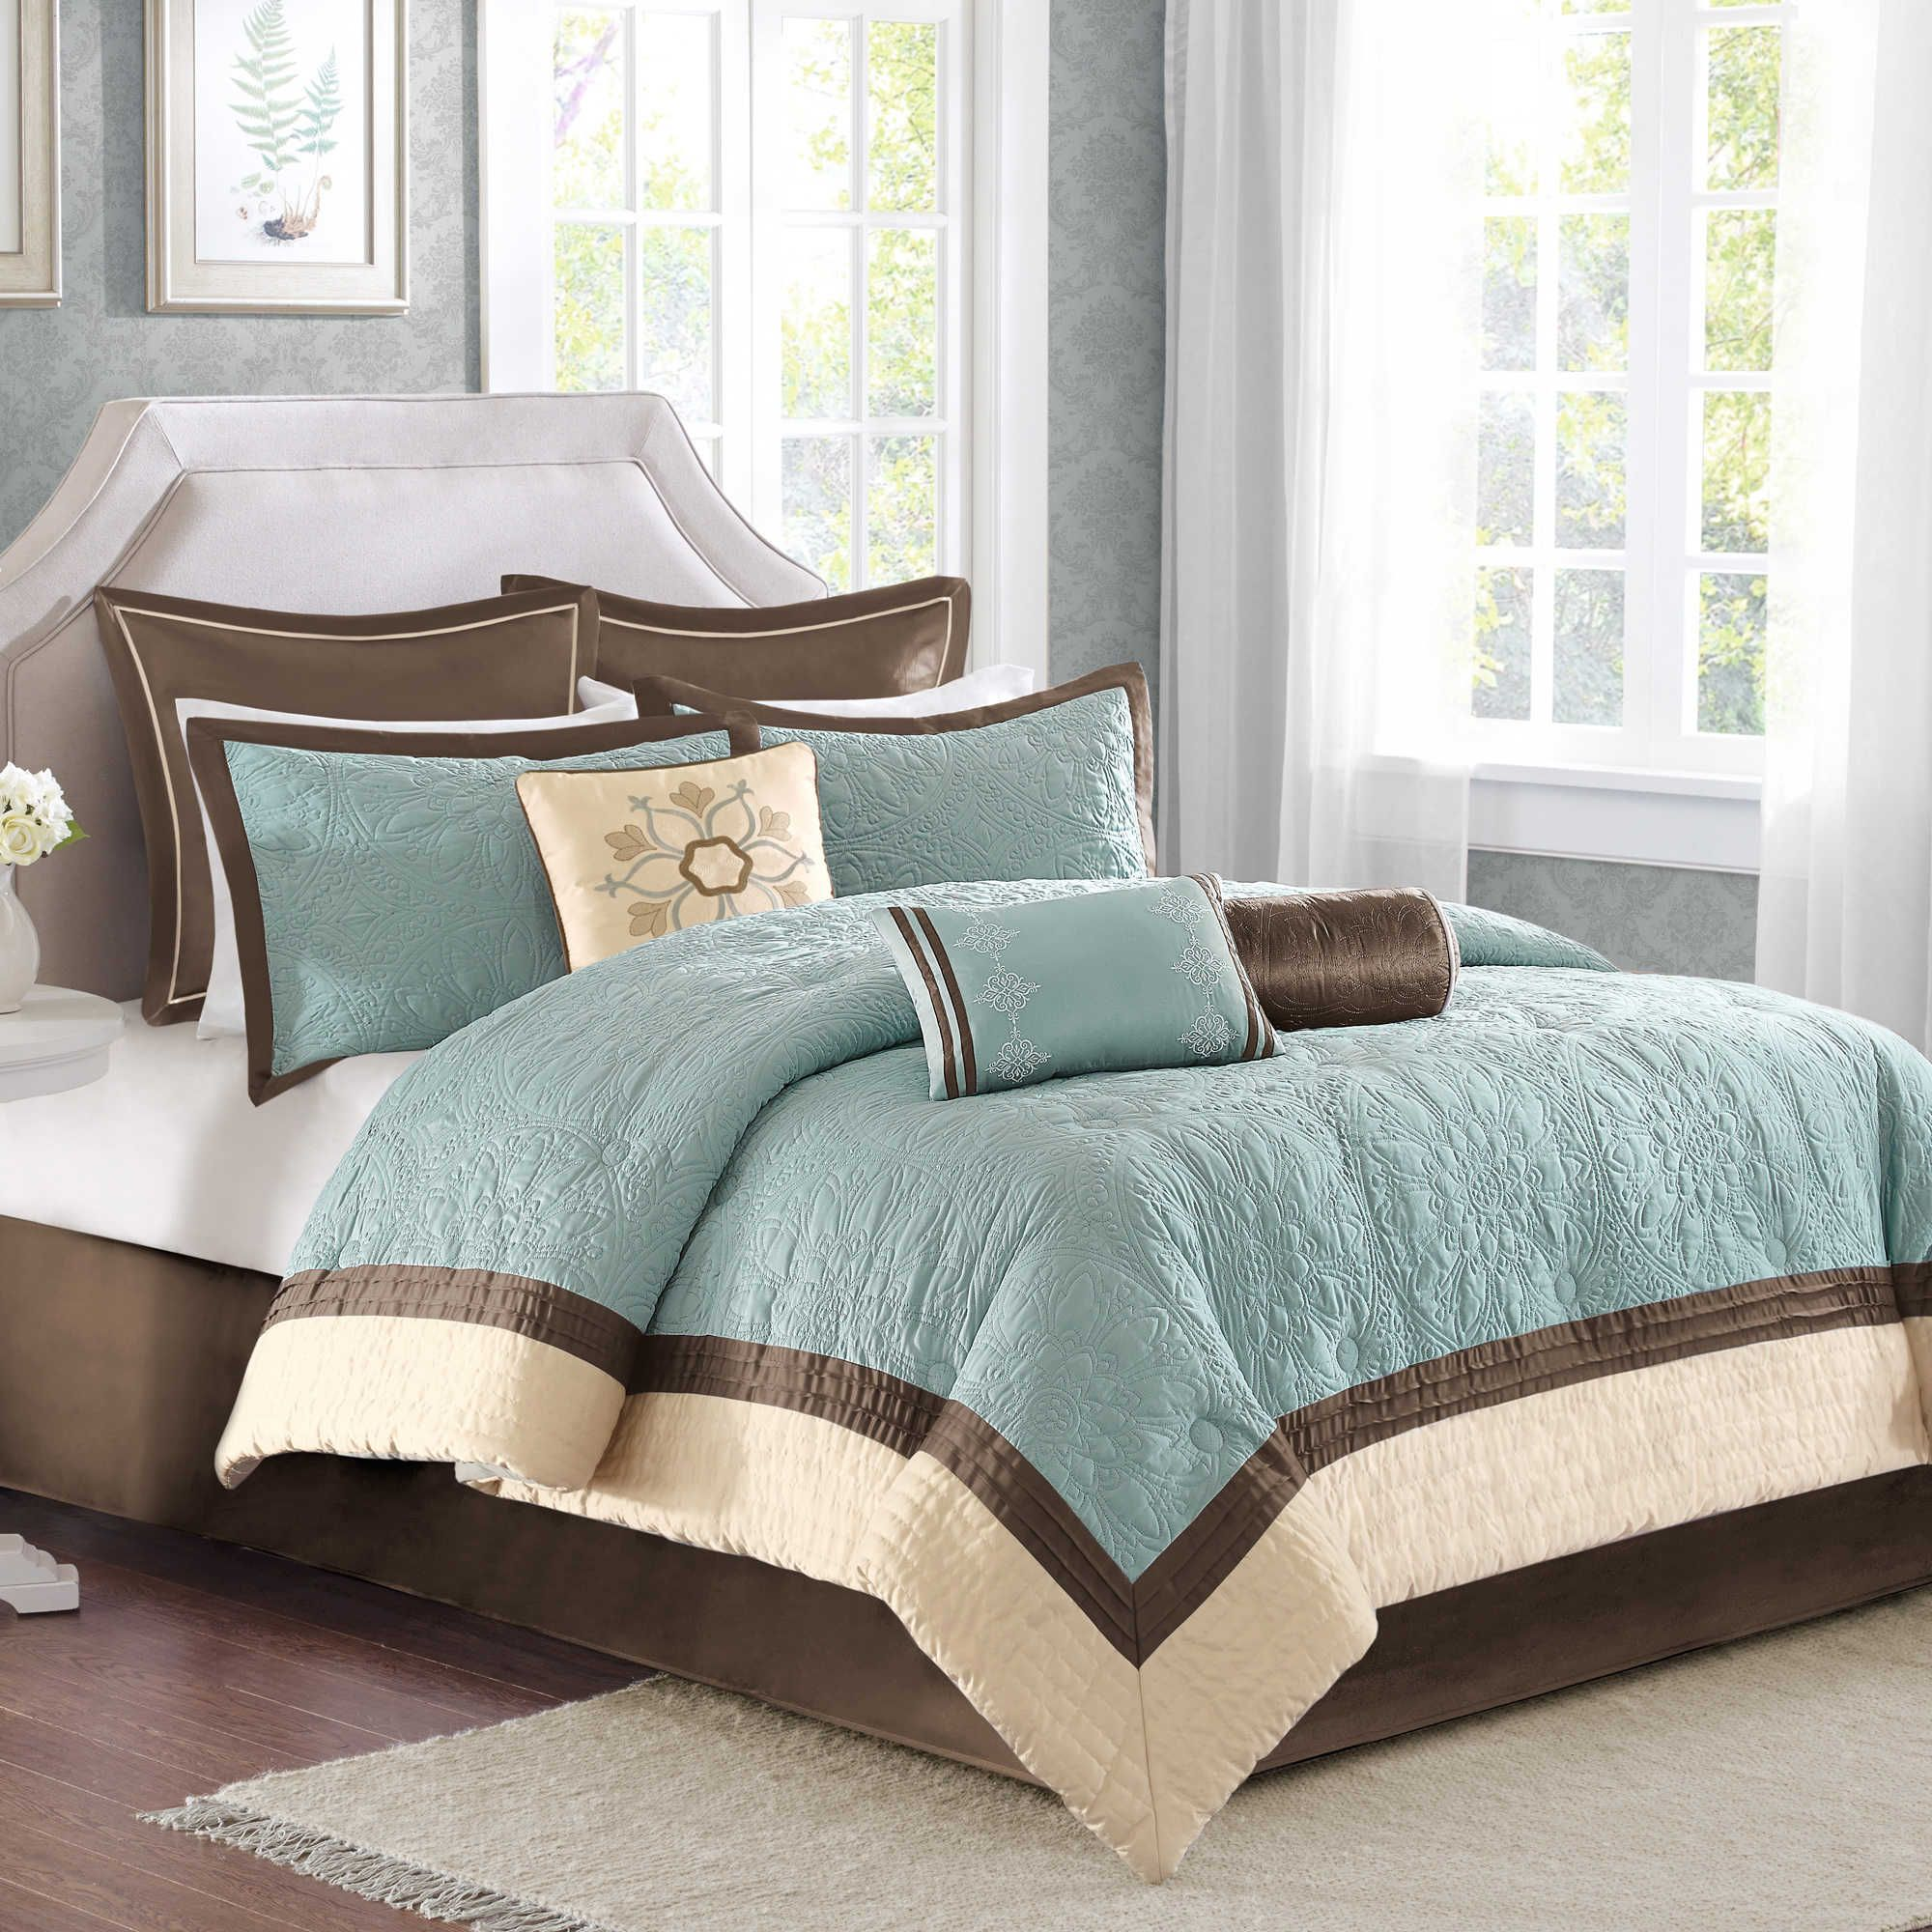 Blue And Brown Bedroom Set madison park juliana 9-piece comforter set in blue | bedding